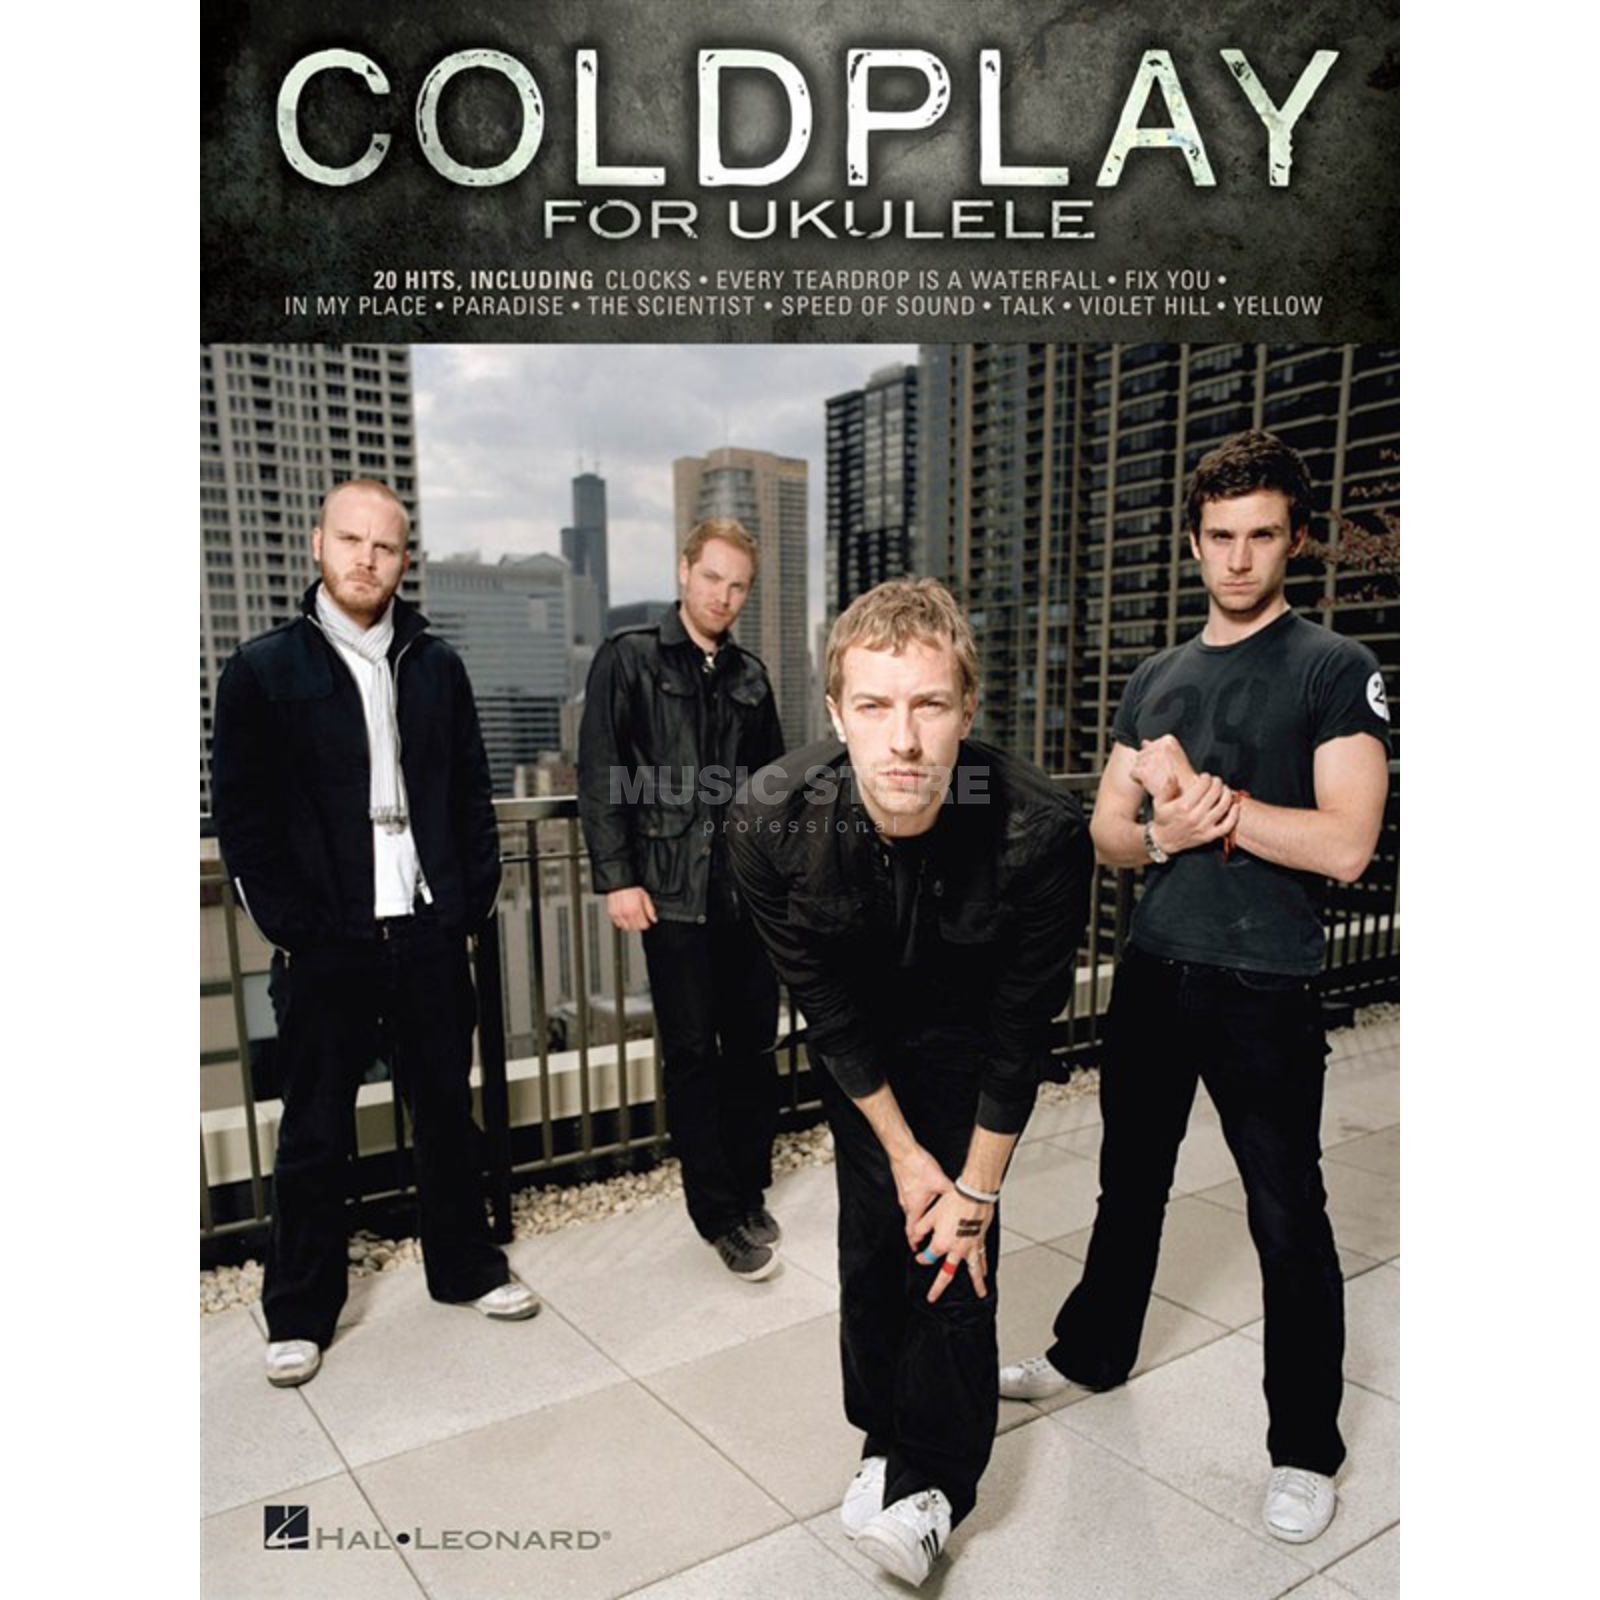 Hal Leonard Coldplay for Ukulele Songbuch Produktbild